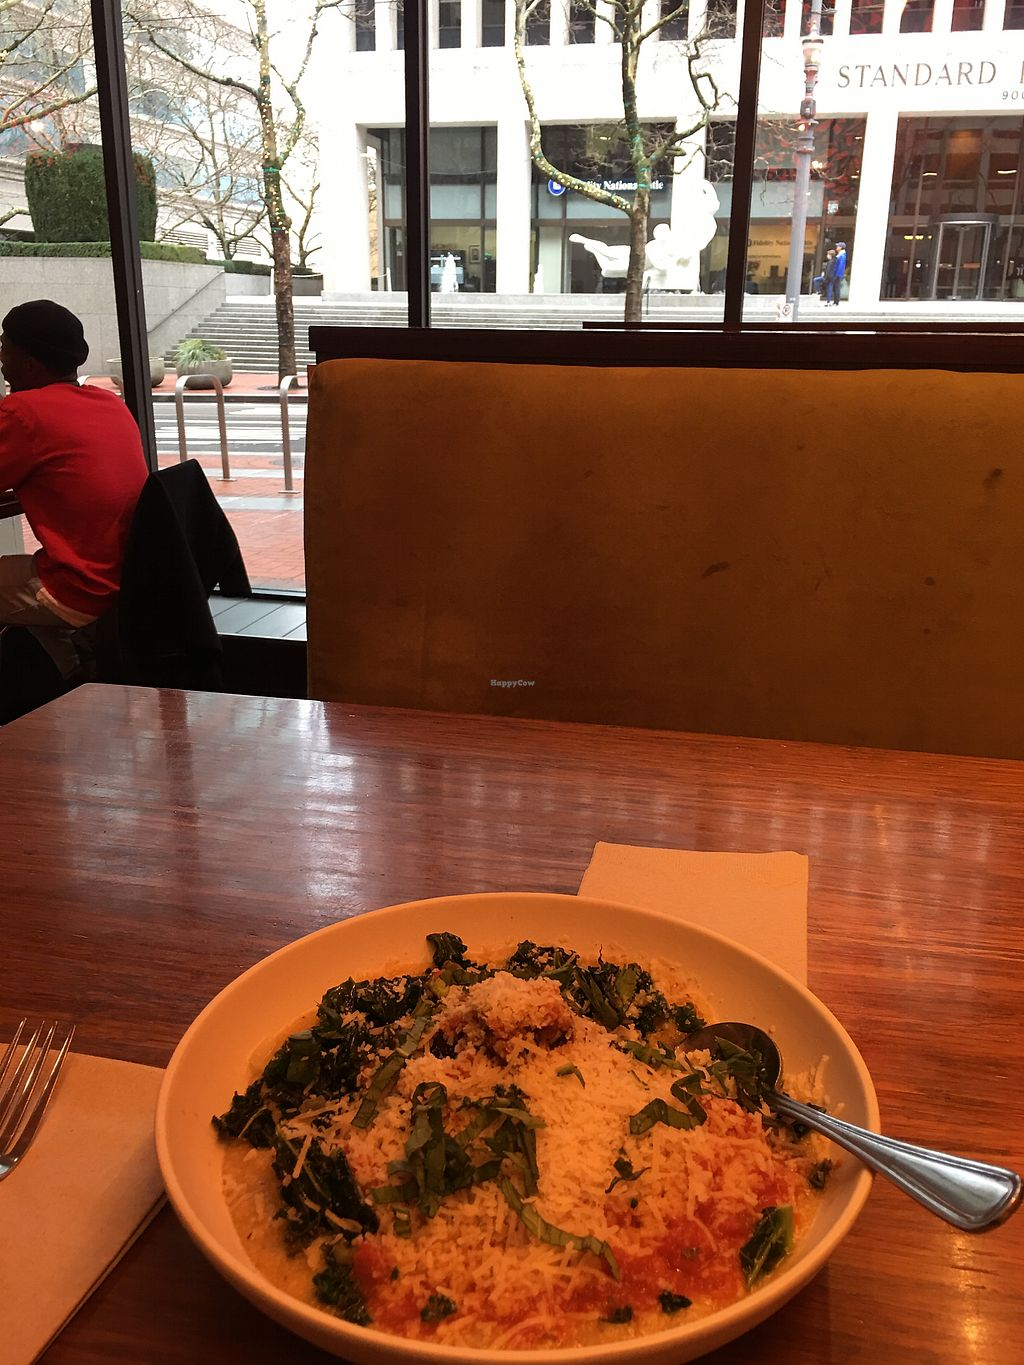 """Photo of Veggie Grill - Downtown Portland  by <a href=""""/members/profile/lvasquared"""">lvasquared</a> <br/>Meatballs and polenta  <br/> January 27, 2018  - <a href='/contact/abuse/image/32544/351652'>Report</a>"""